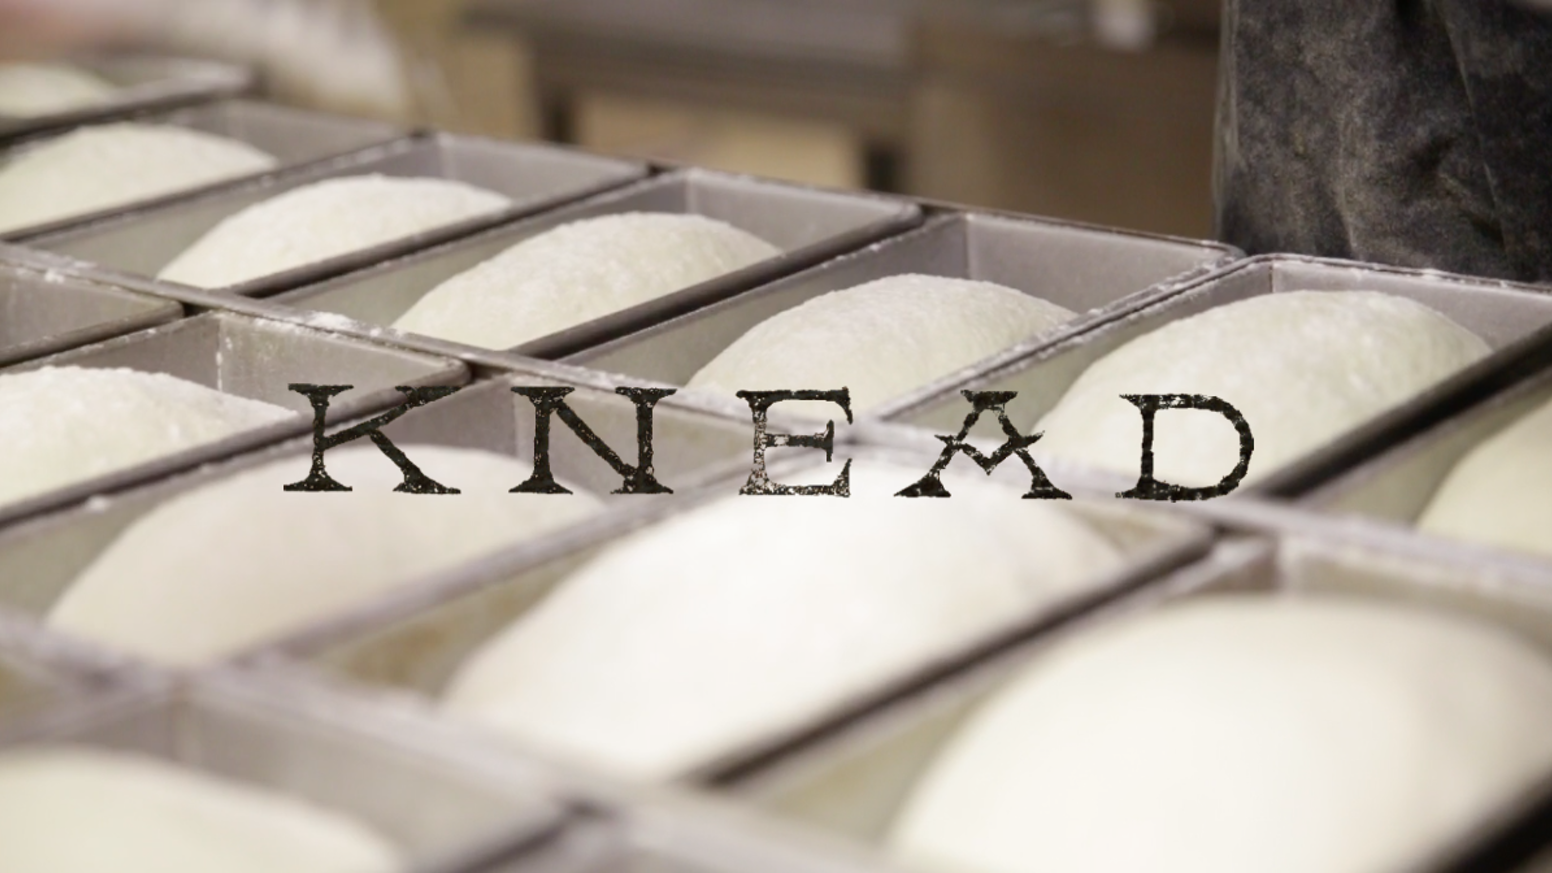 After 3 seasons of perfecting our loaves & selling at farmers markets in St. Louis, KNEAD is ready to open a legit sourdough bakery.